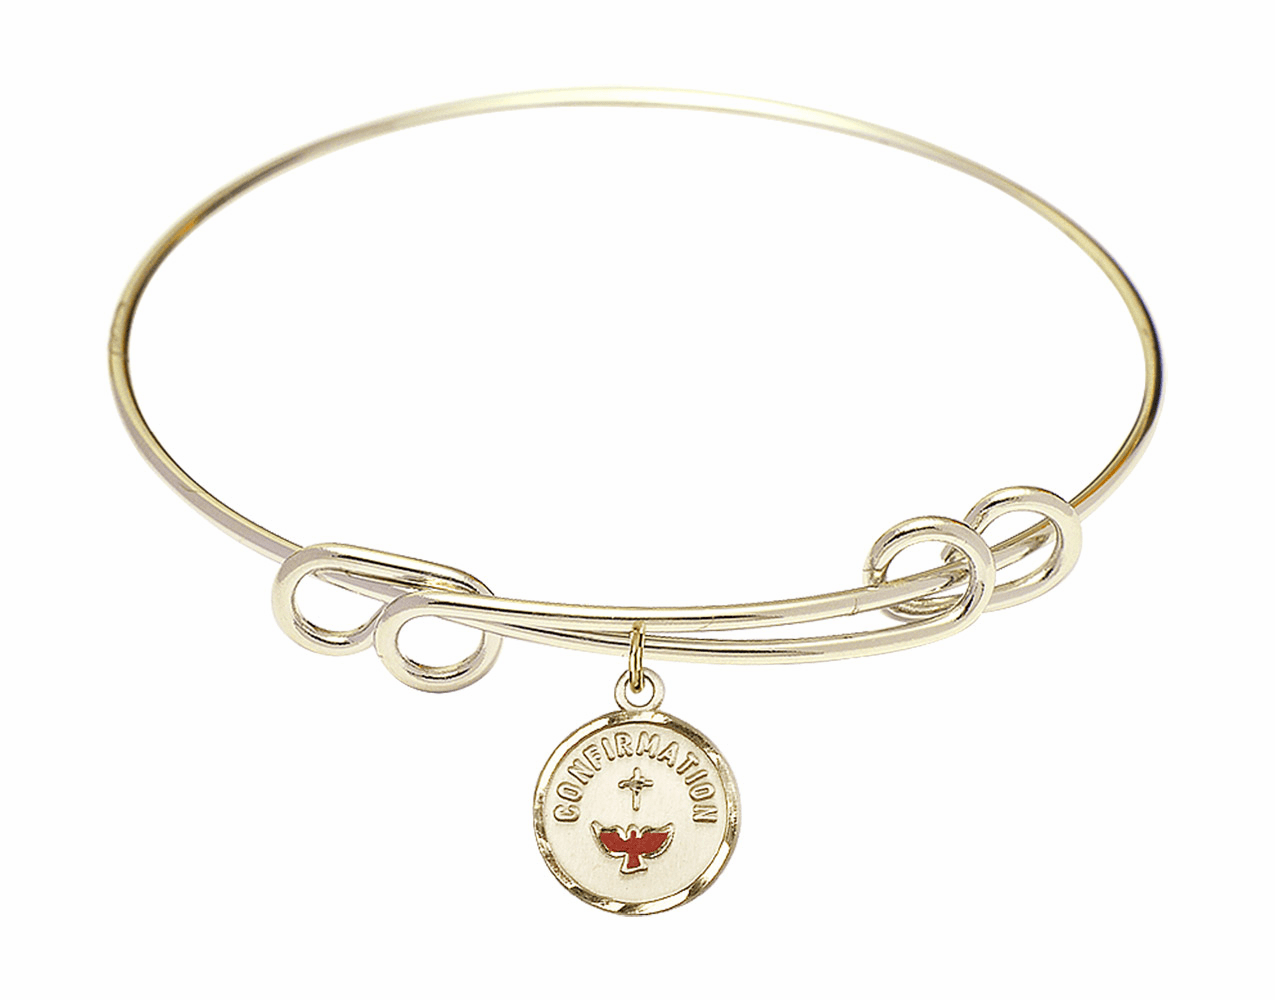 Round Double Loop Bangle Bracelet Red Confirmation 14kt Gold-filled Charm by Bliss Mfg